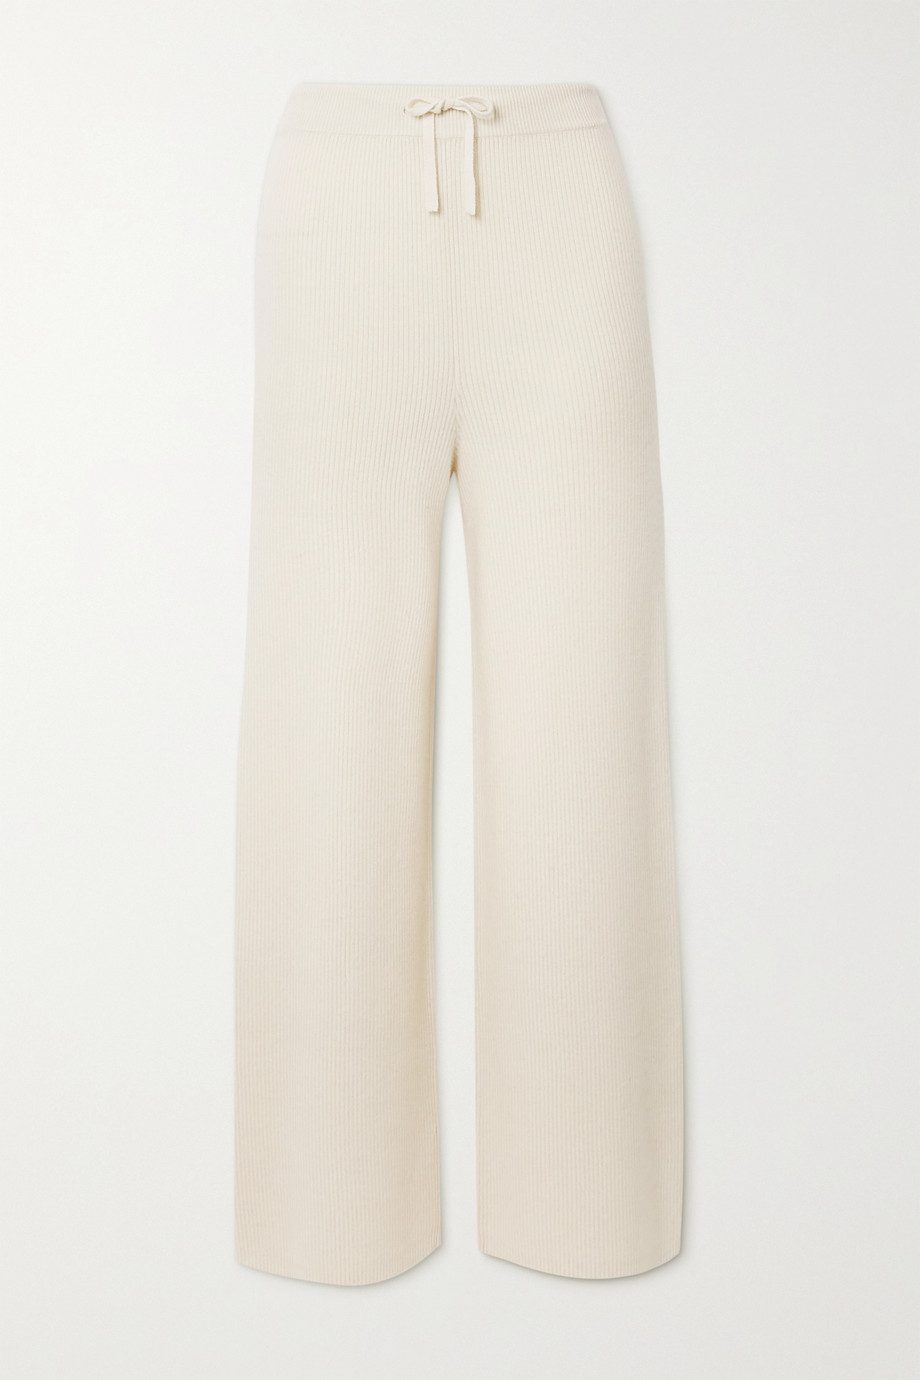 Lisa Yang Heather ribbed cashmere straight-leg pants